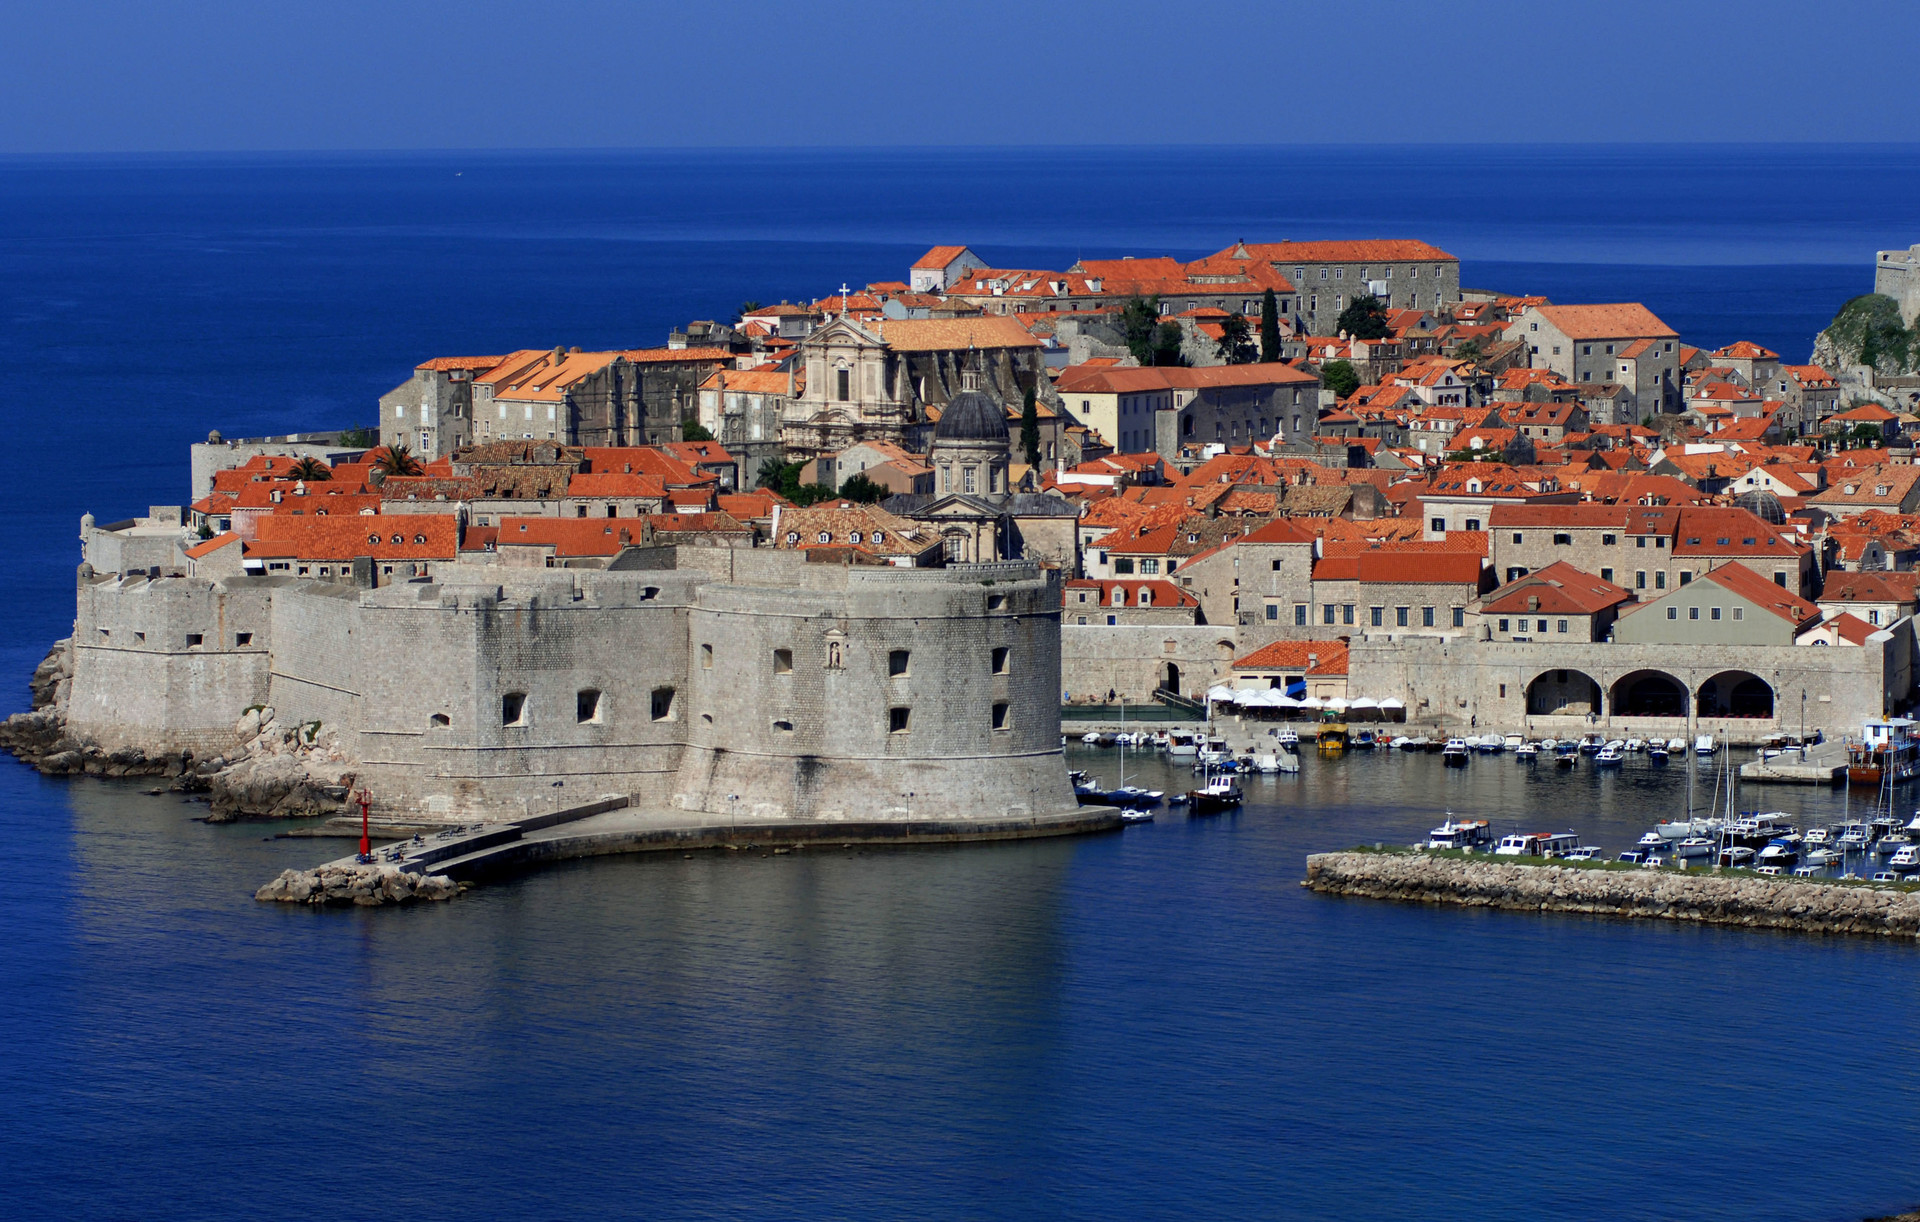 Dubrovnik, Croatia - Monterrasol small group tours to Croatia. Travel agency offers small group car tours to see Croatia in Croatia. Order small group tour to Croatia with departure date on request.